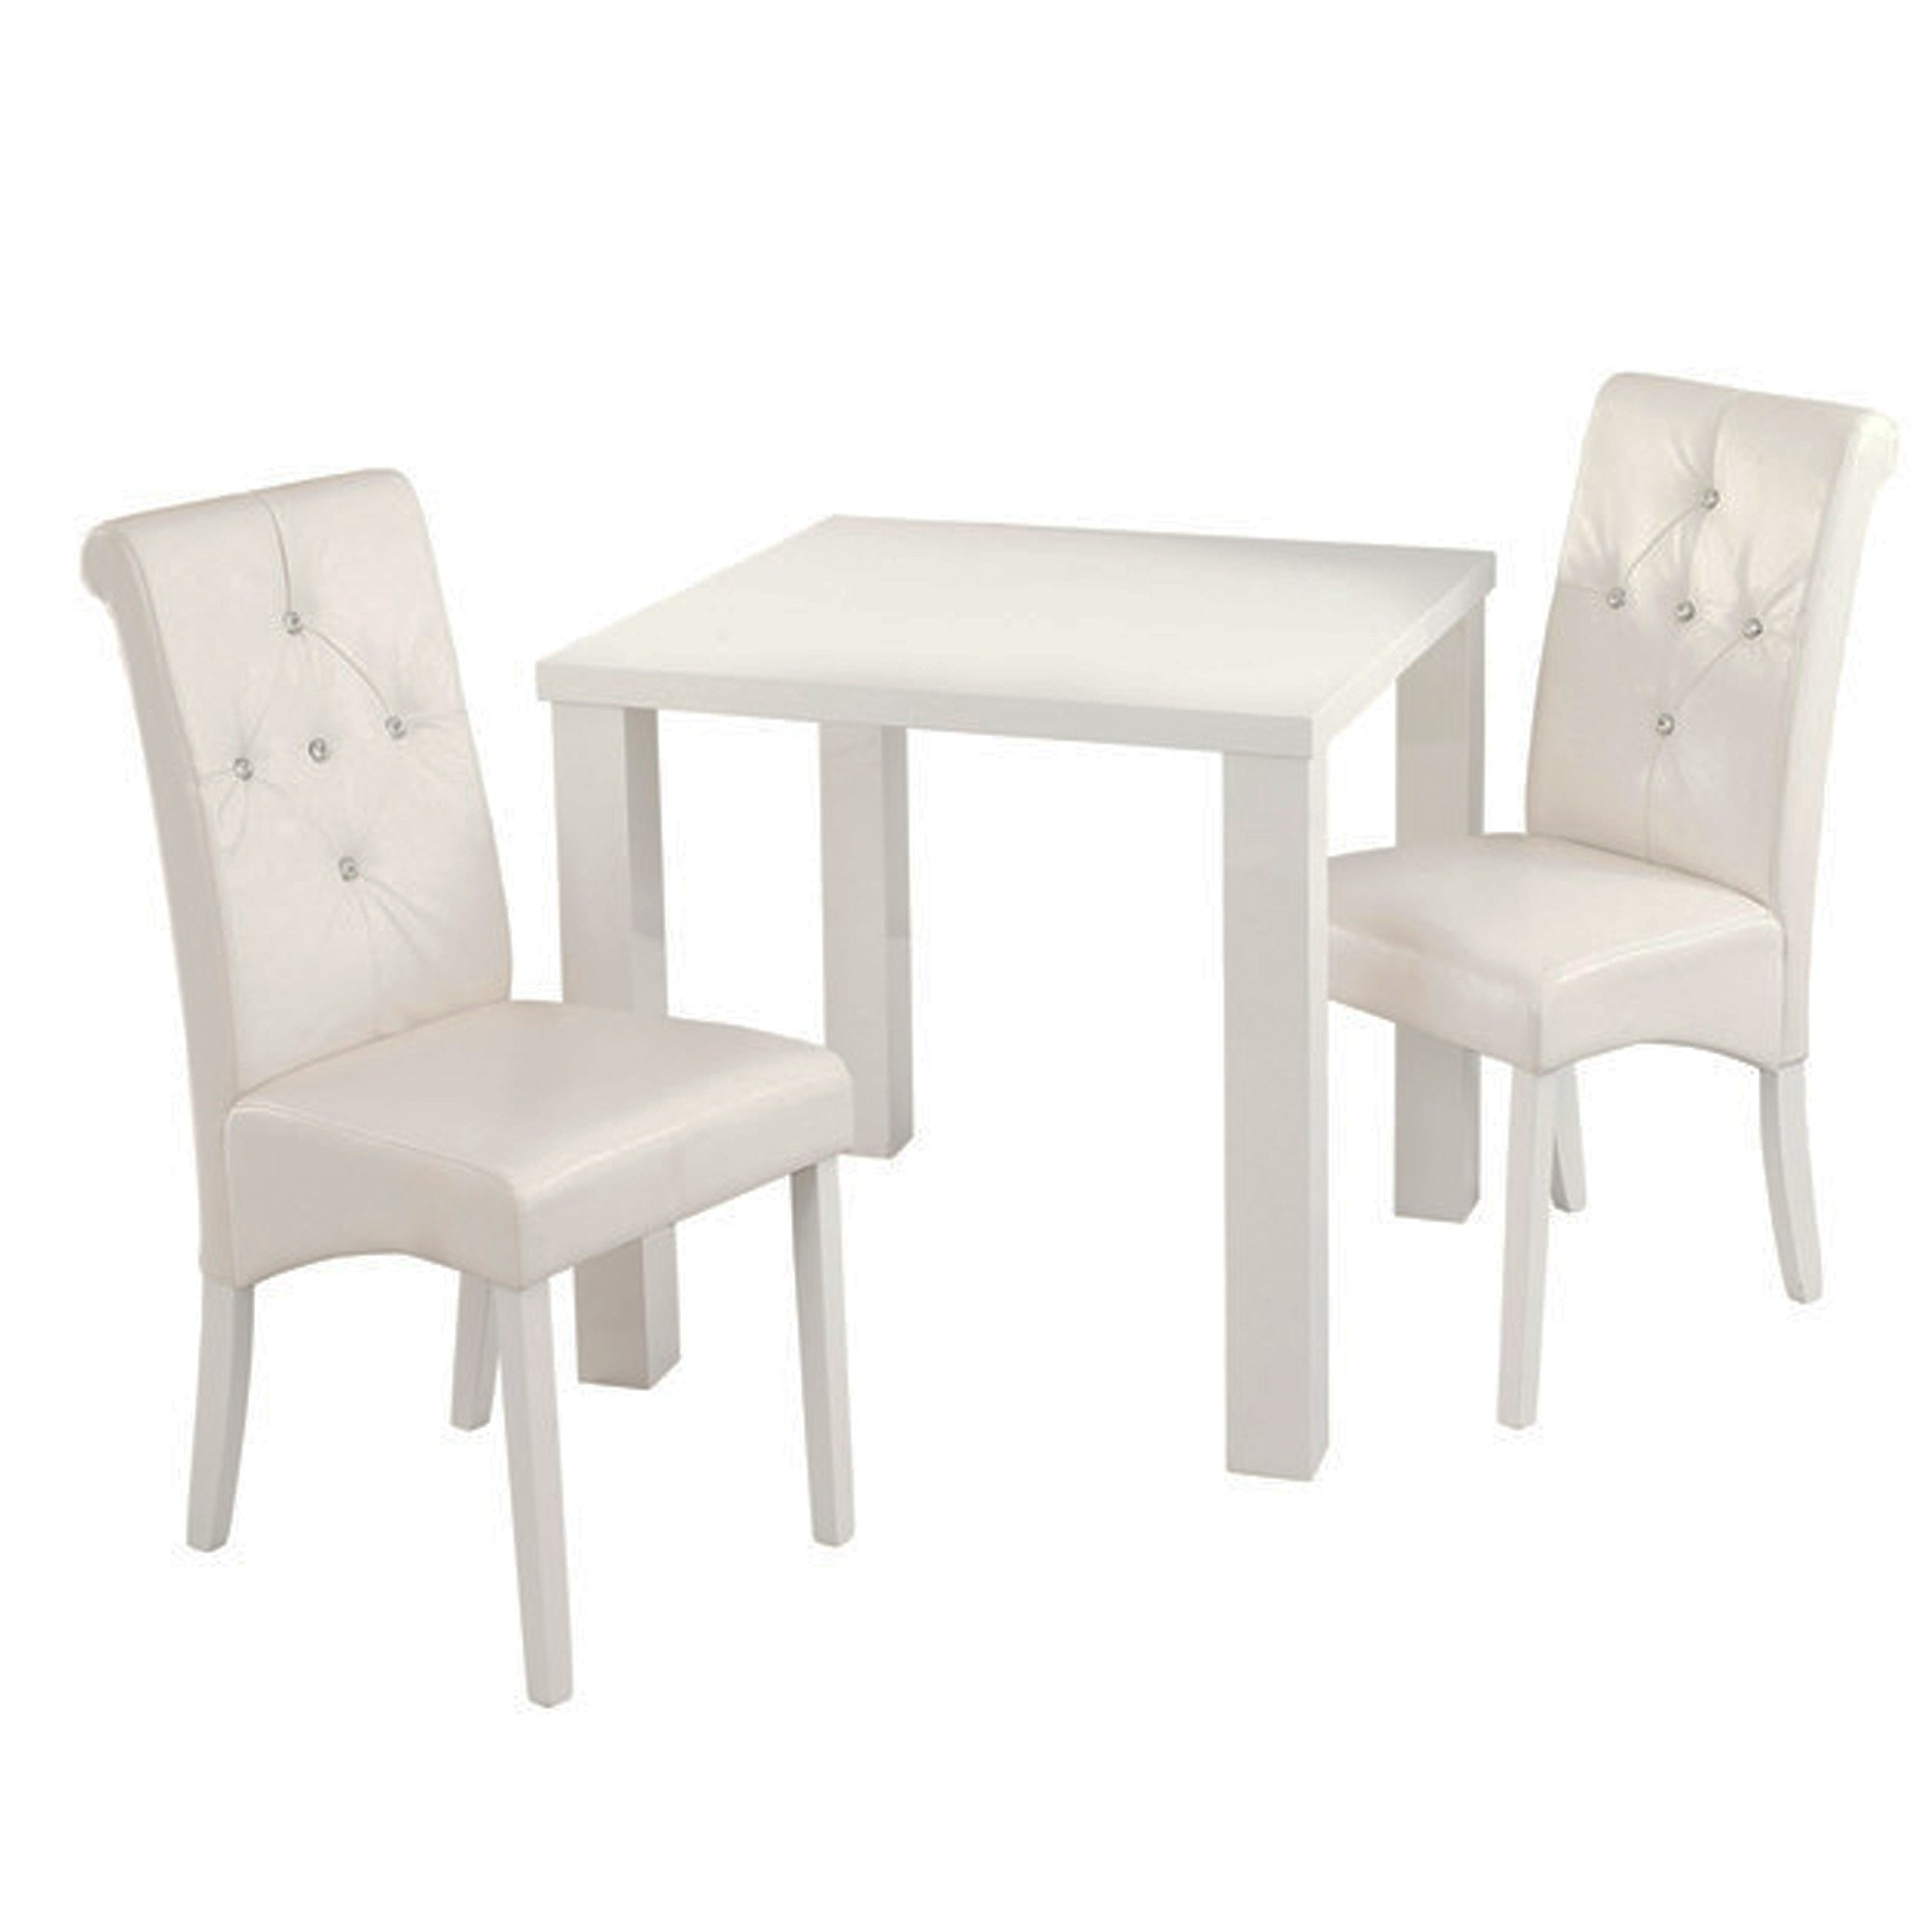 Monroe Diamante White Dining Chair Pack Of 2 White Dining Chair